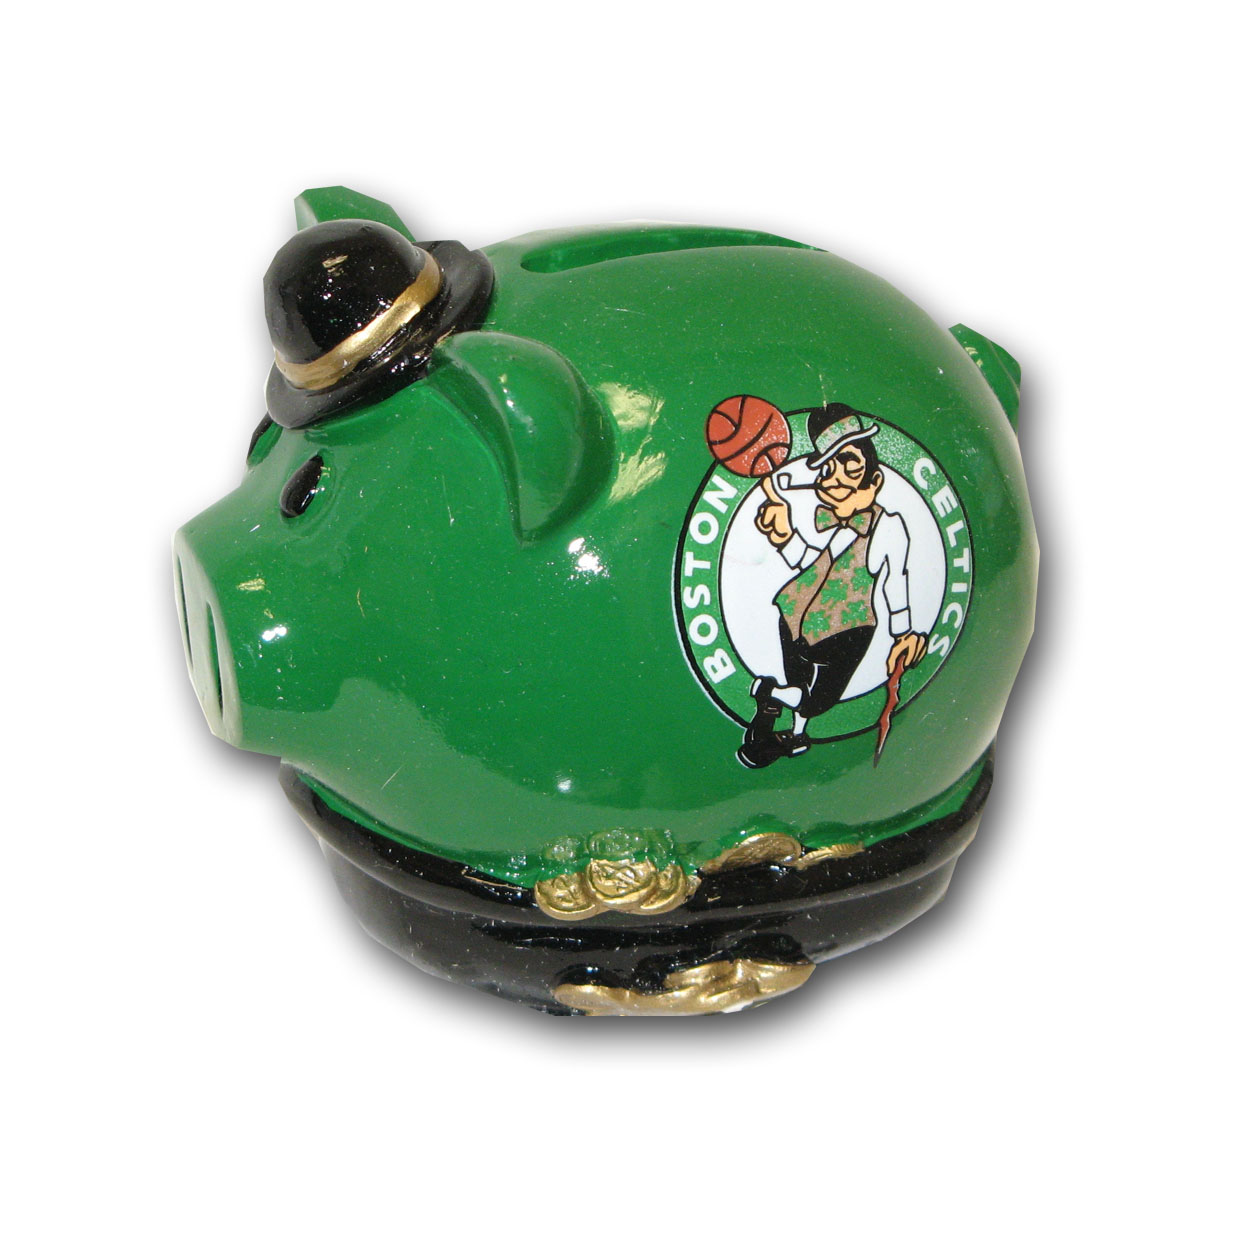 Small Thematic Piggy Bank - NBA Boston Celtics